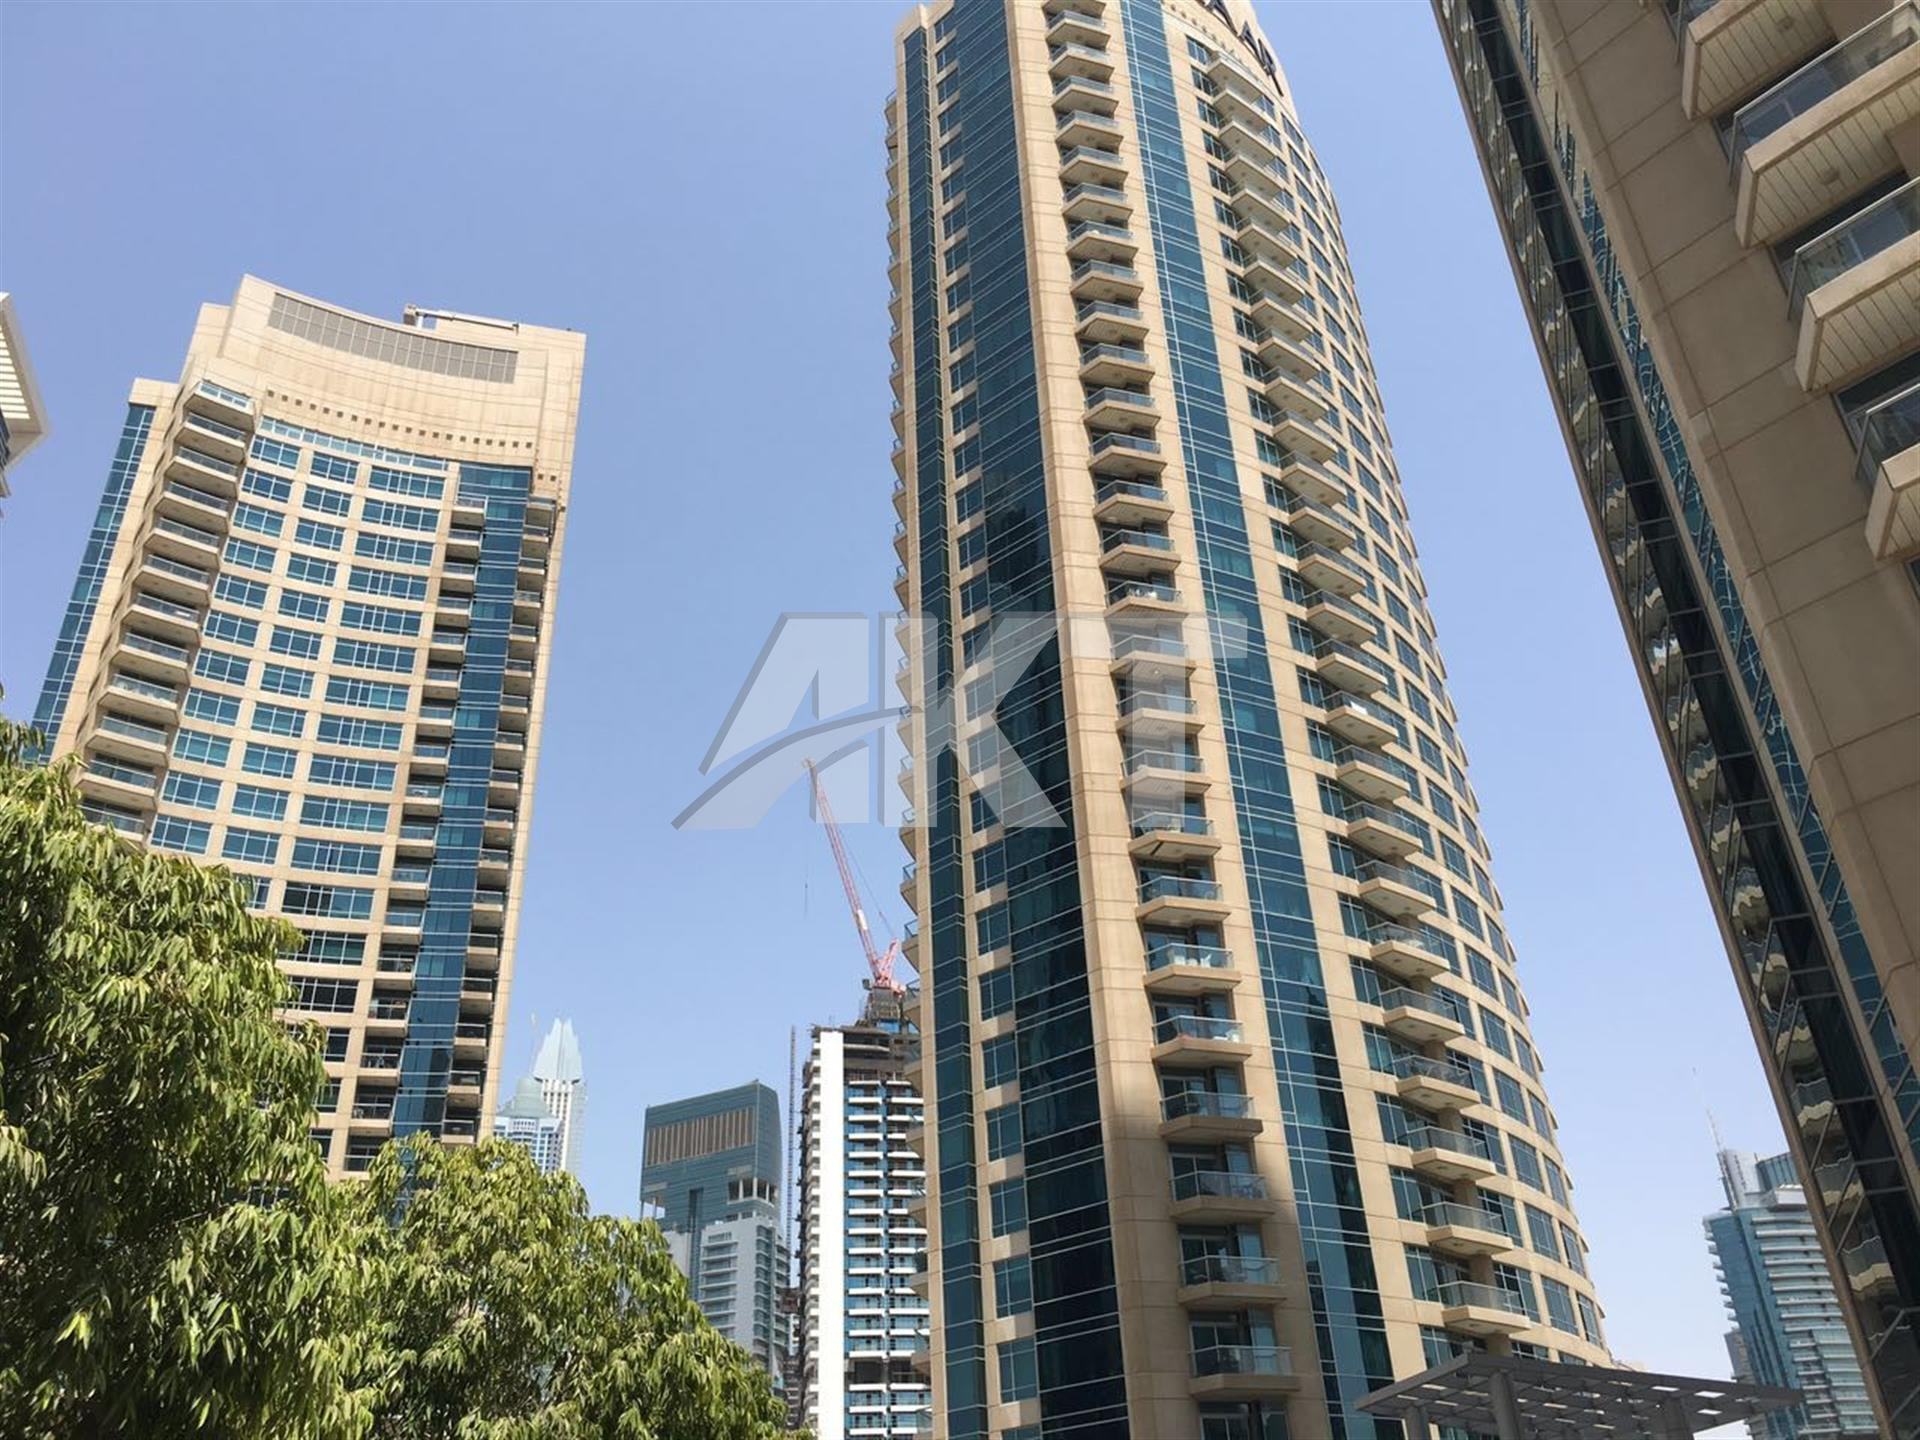 59 K / 1 Bed / Furnished / Full Sea View / Chiller Free